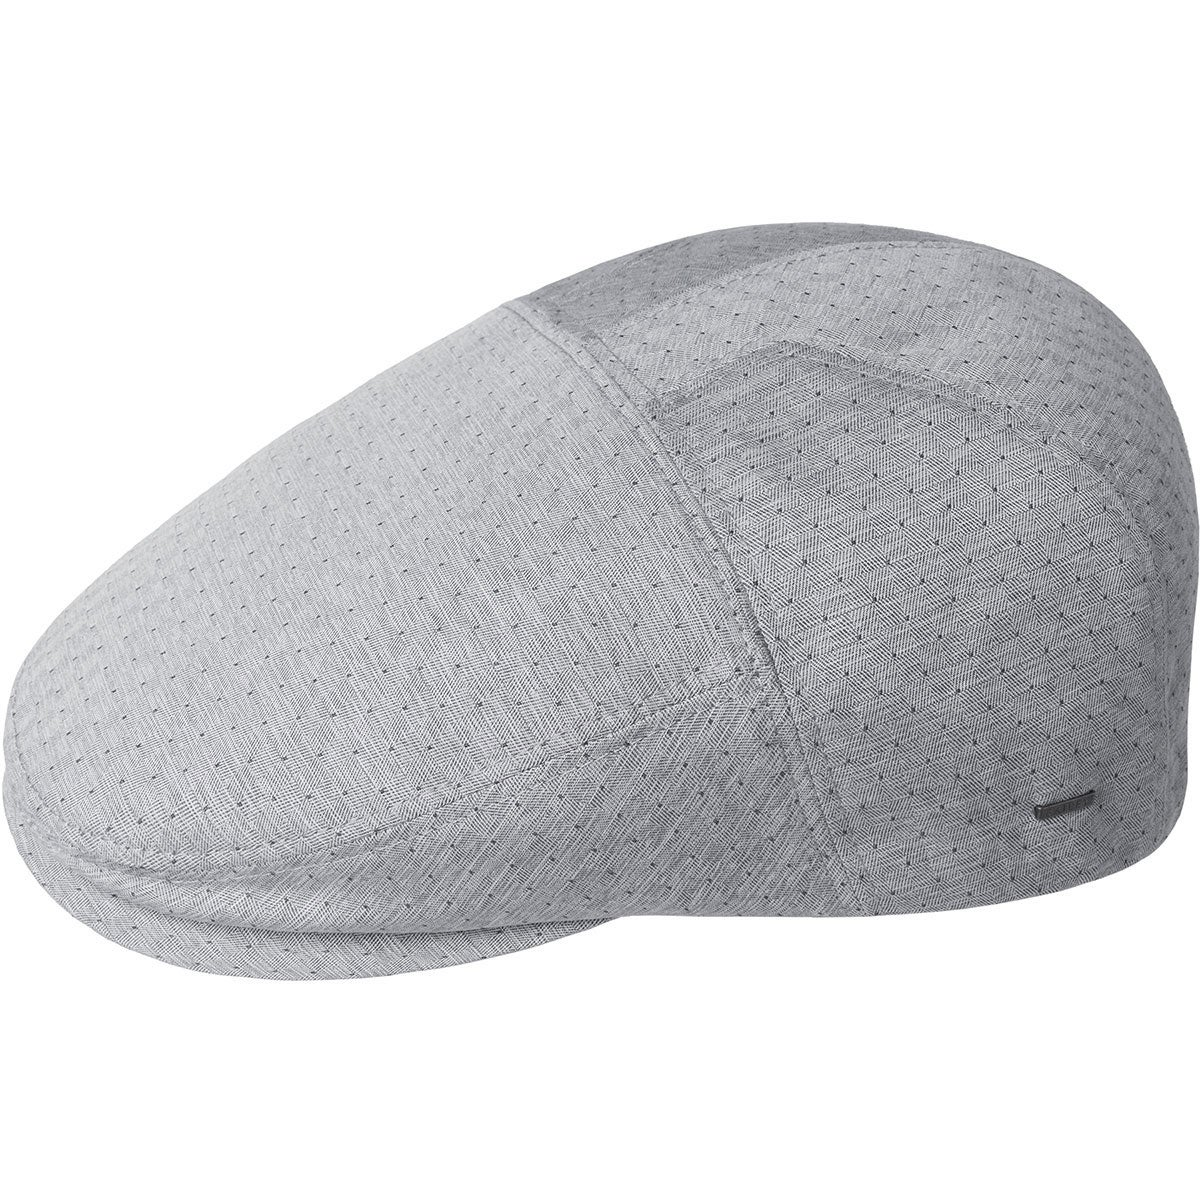 Bailey of Hollywood Ganey Cap in Charcoal